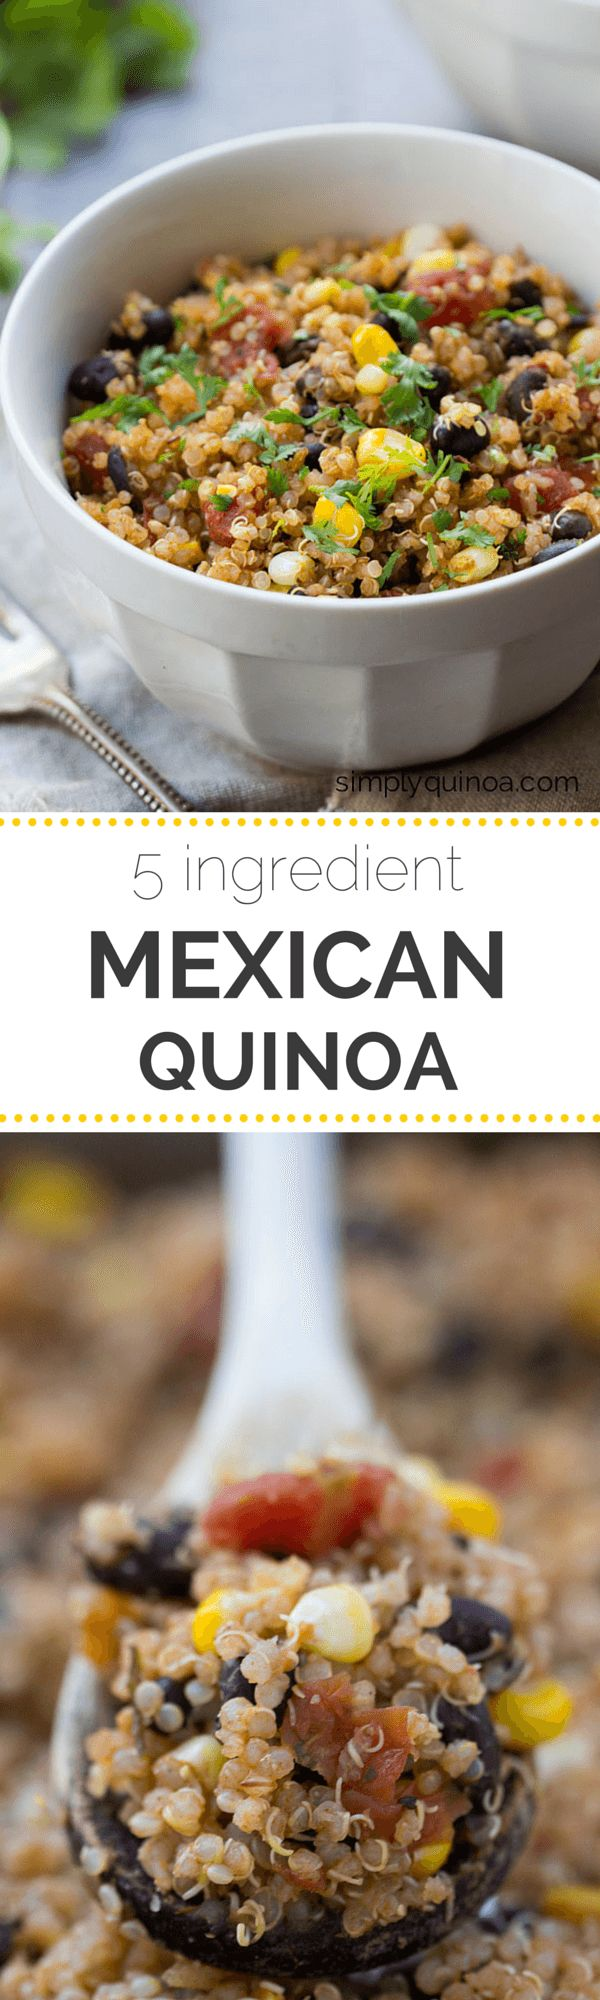 Easy Mexican Quinoa using only 5-ingredients! A quick and healthy dinner everyone will love | recipe on simplyquinoa.com